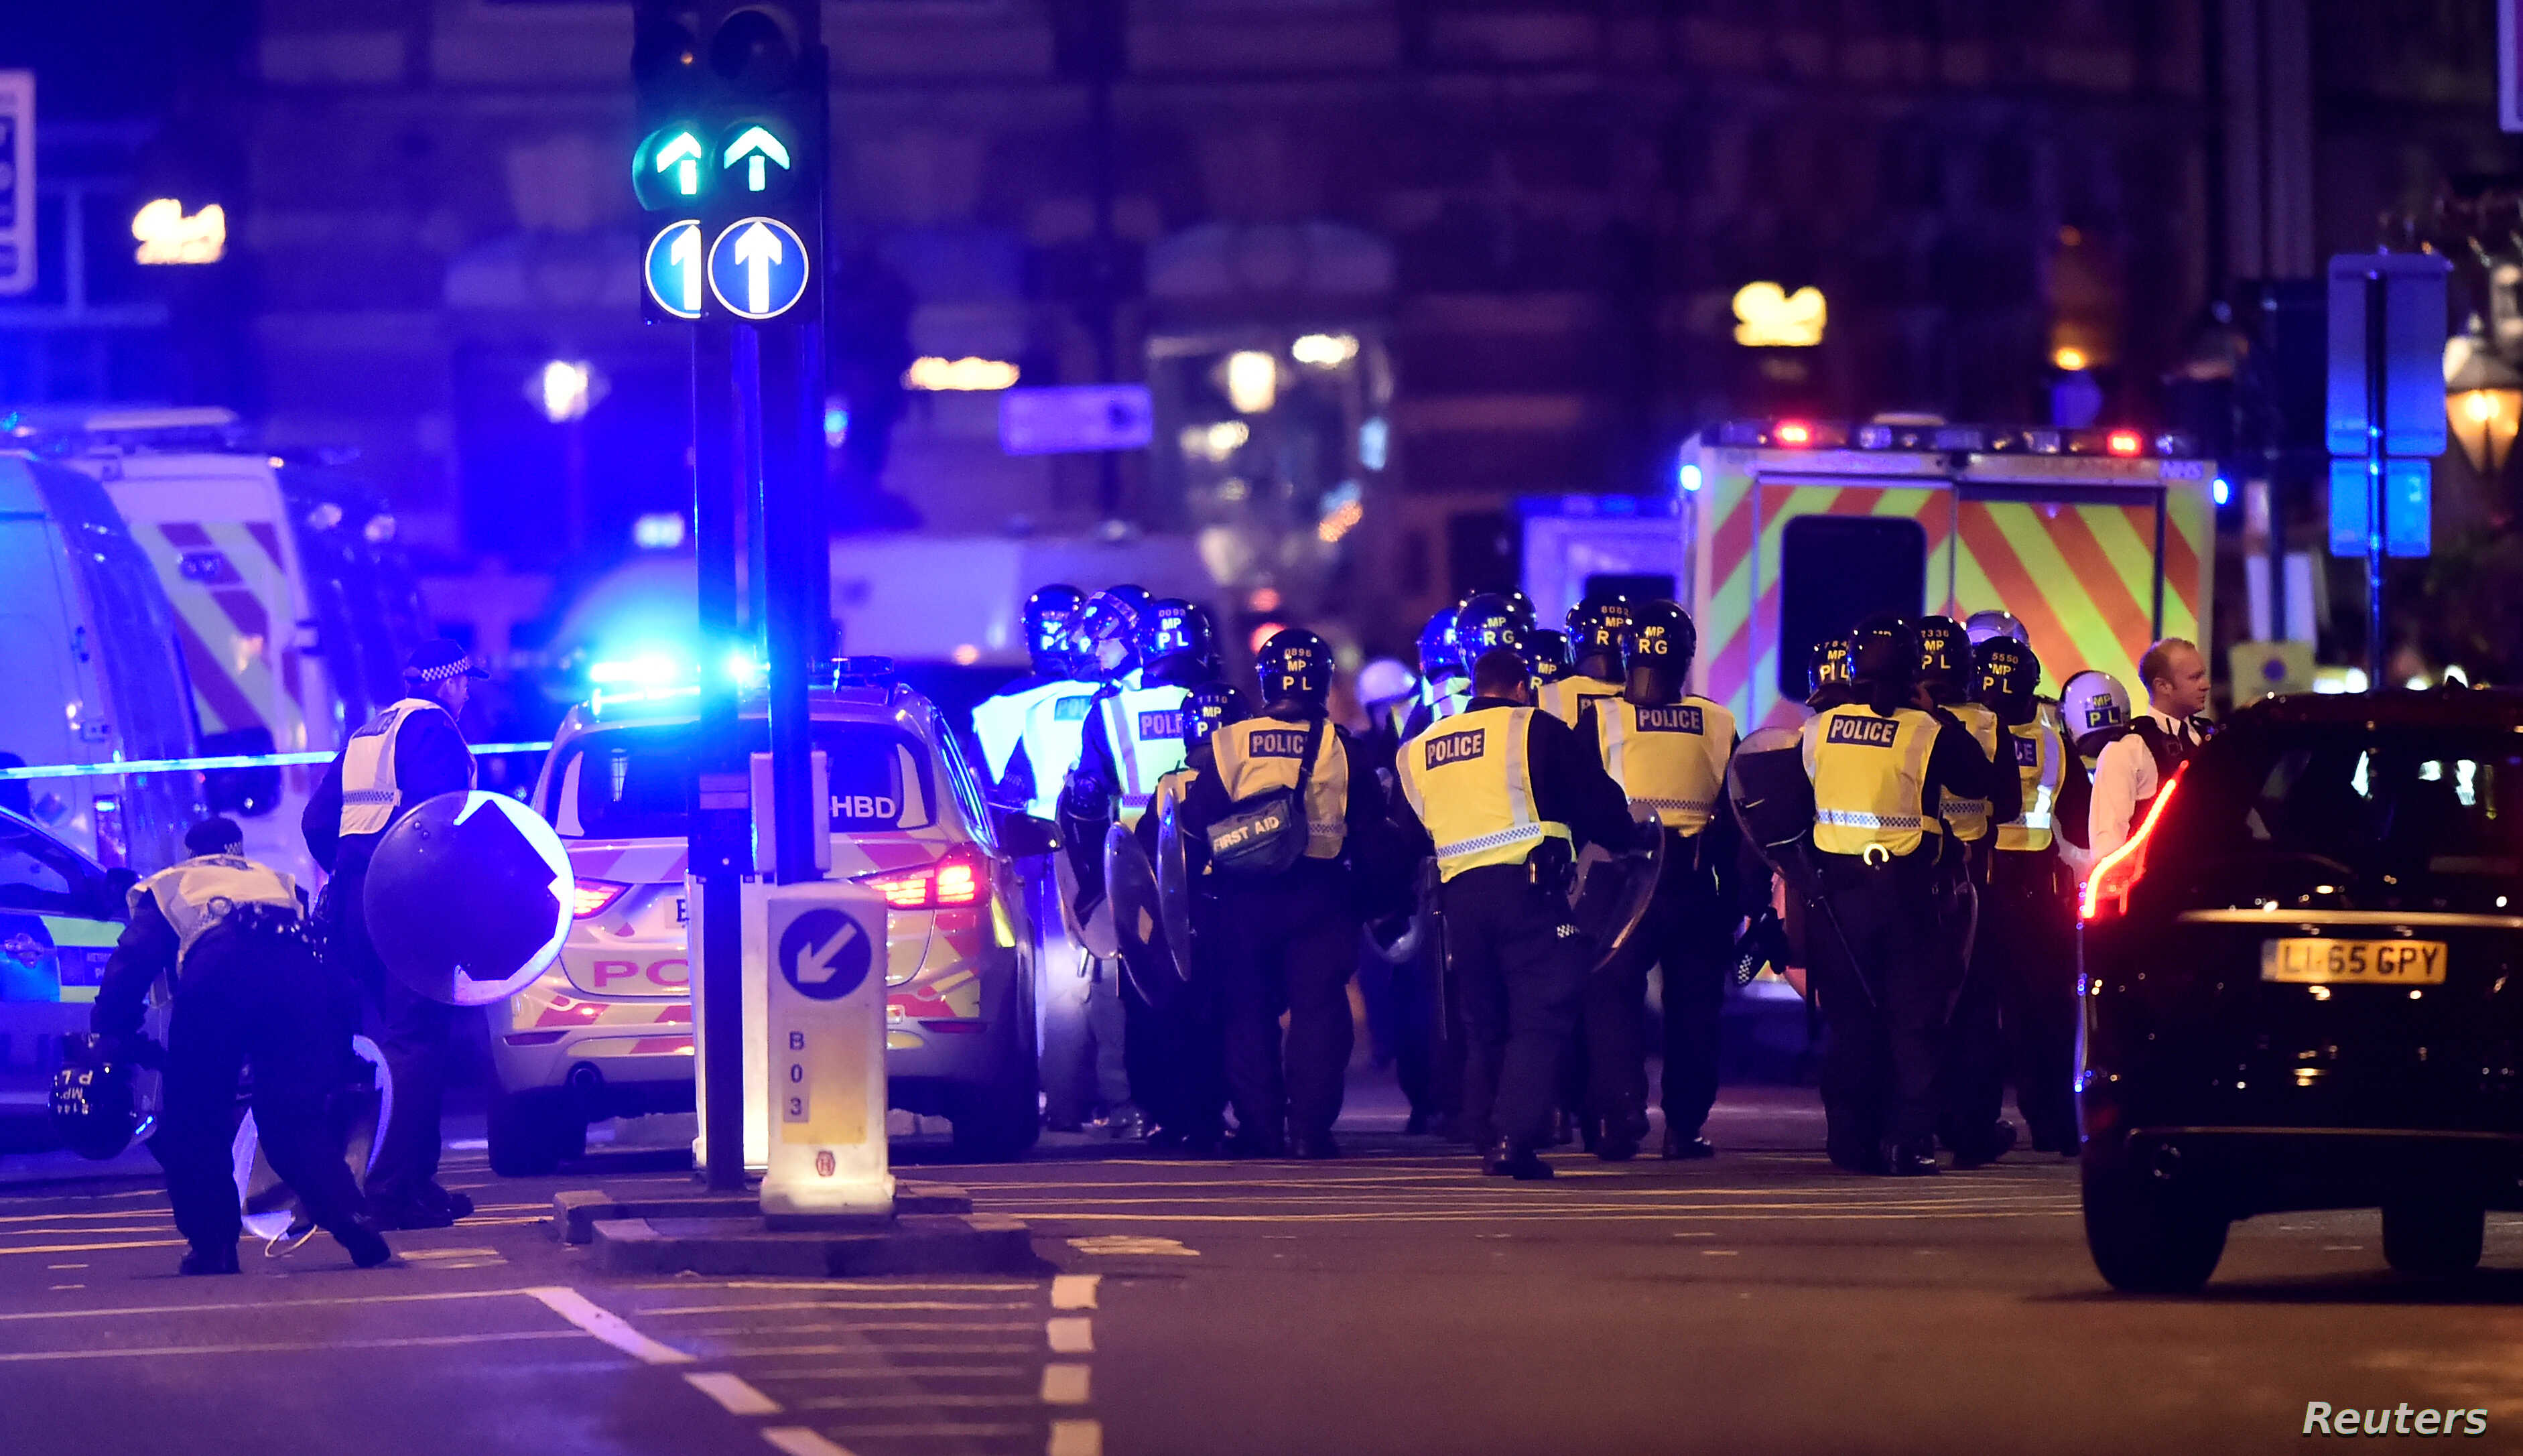 Police attend to an incident on London Bridge in London, Britain, June 3, 2017.